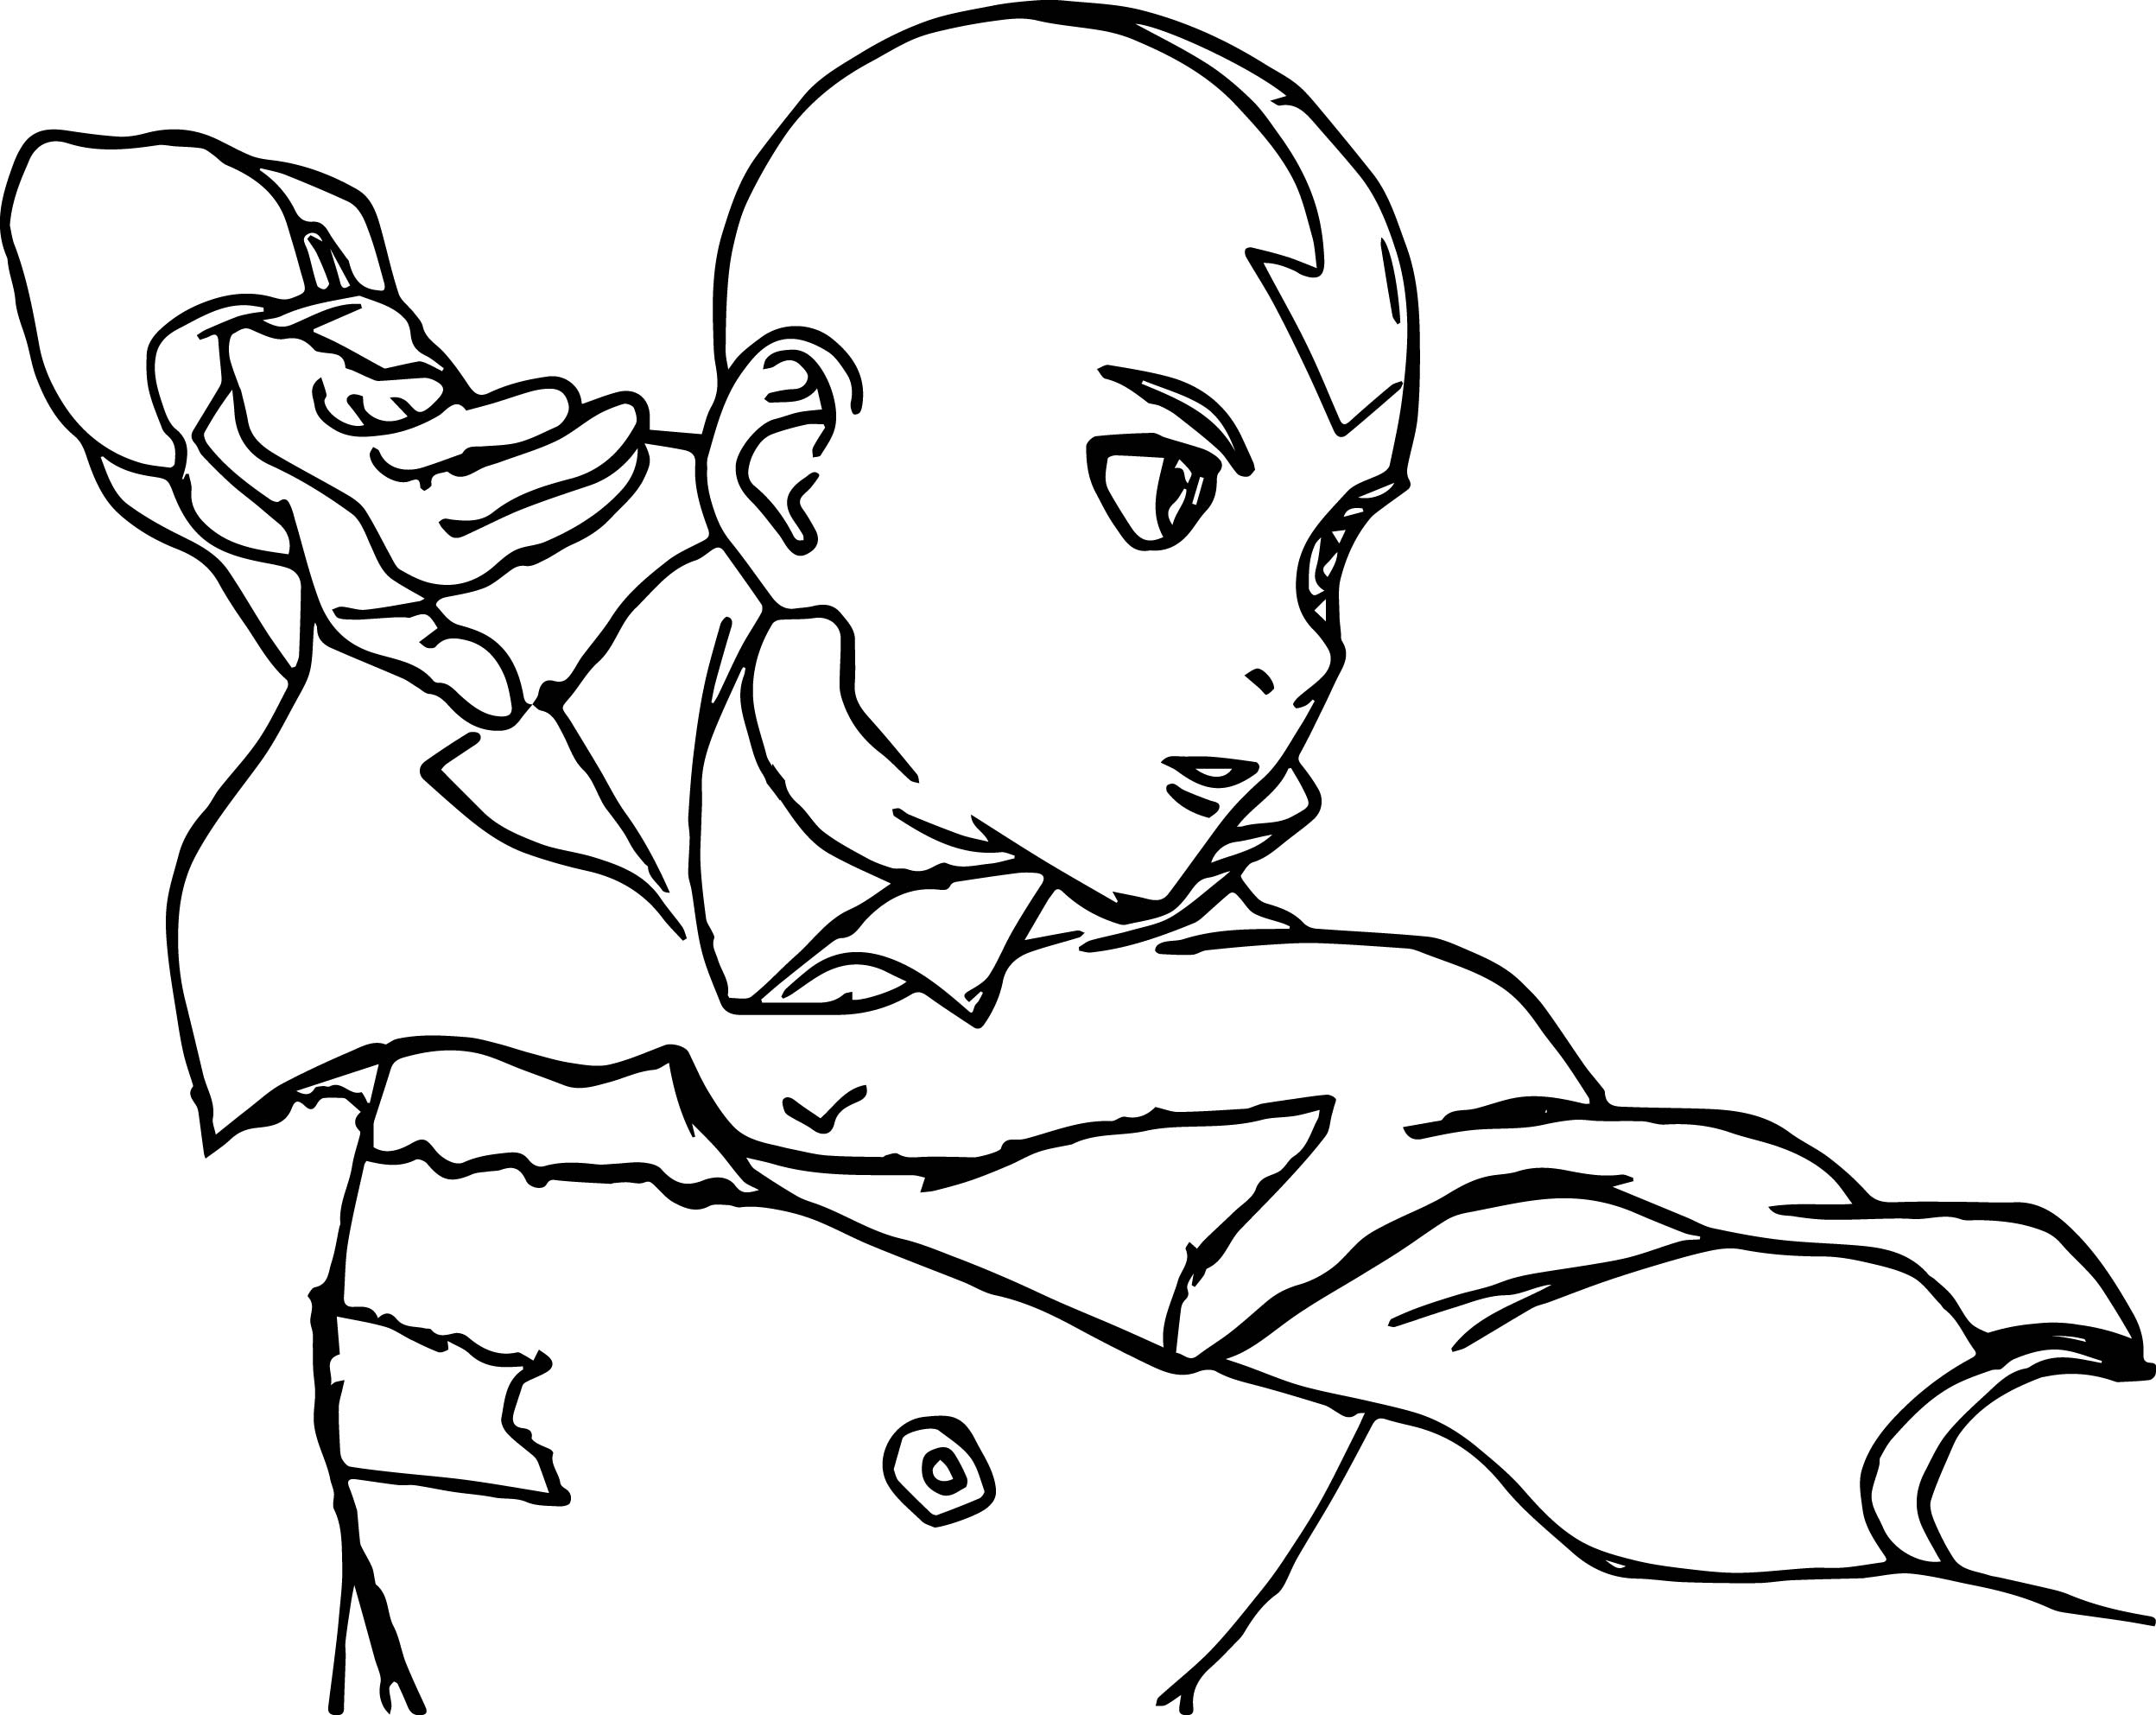 Aang Air Avatar The Last Airbender Coloring Page  Wecoloringpage